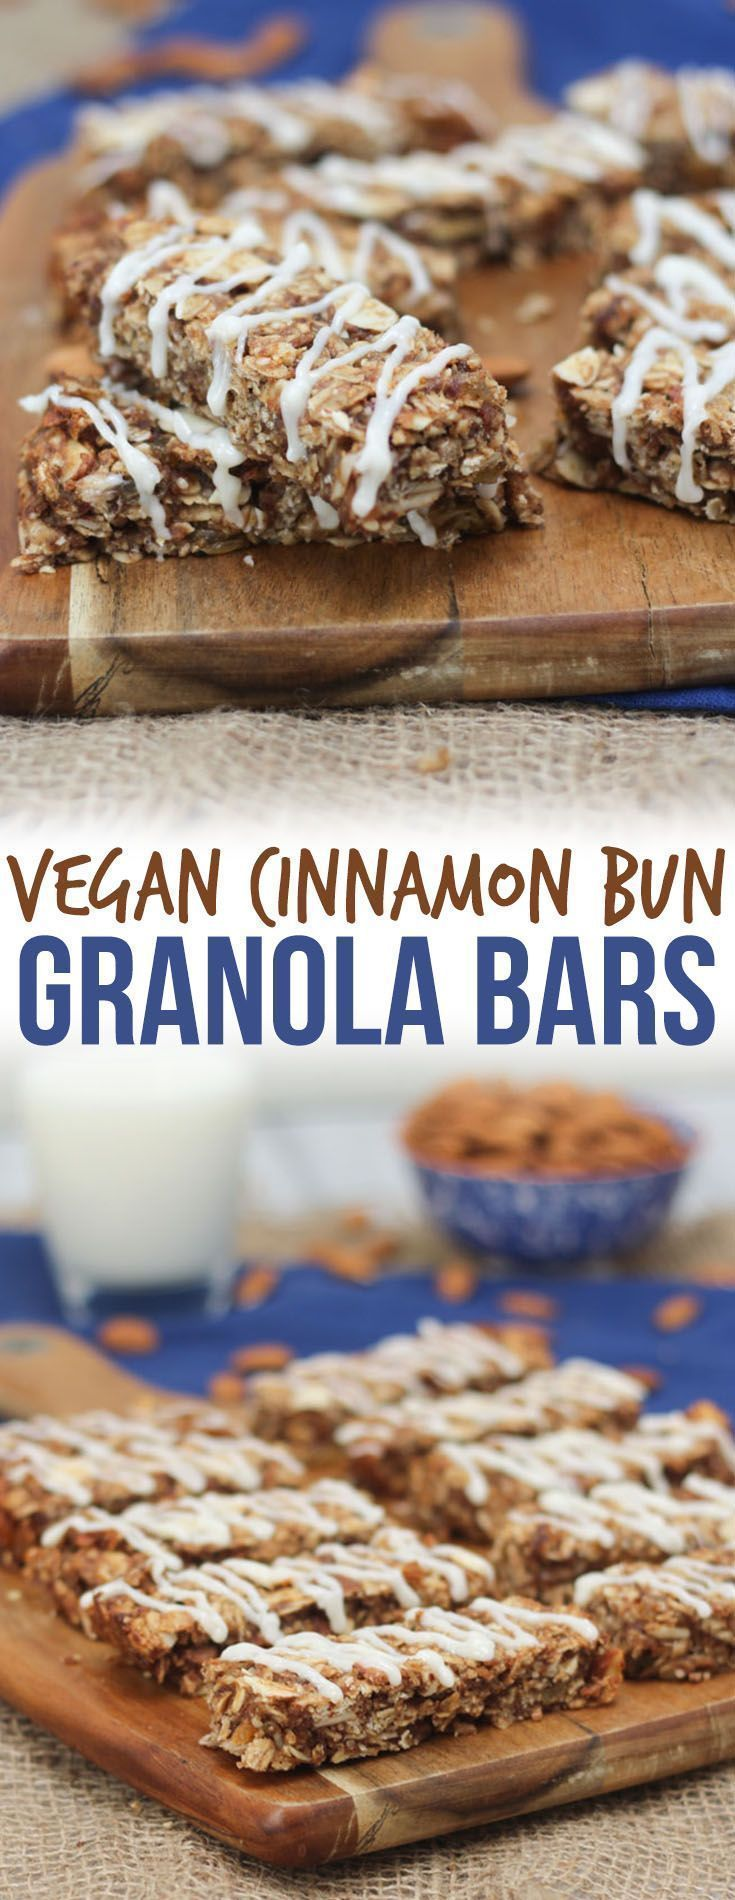 These Vegan Cinnamon Bun Chewy Granola Bars are the perfect Healthy Gluten Free and Plant Based Snack to help get you through the 3 PM energy dip. Vegan Cinnamon Bun Chewy Granola Bars are the perfect Healthy Gluten Free and Plant Based Snack to help get you through the 3 PM energy dip.